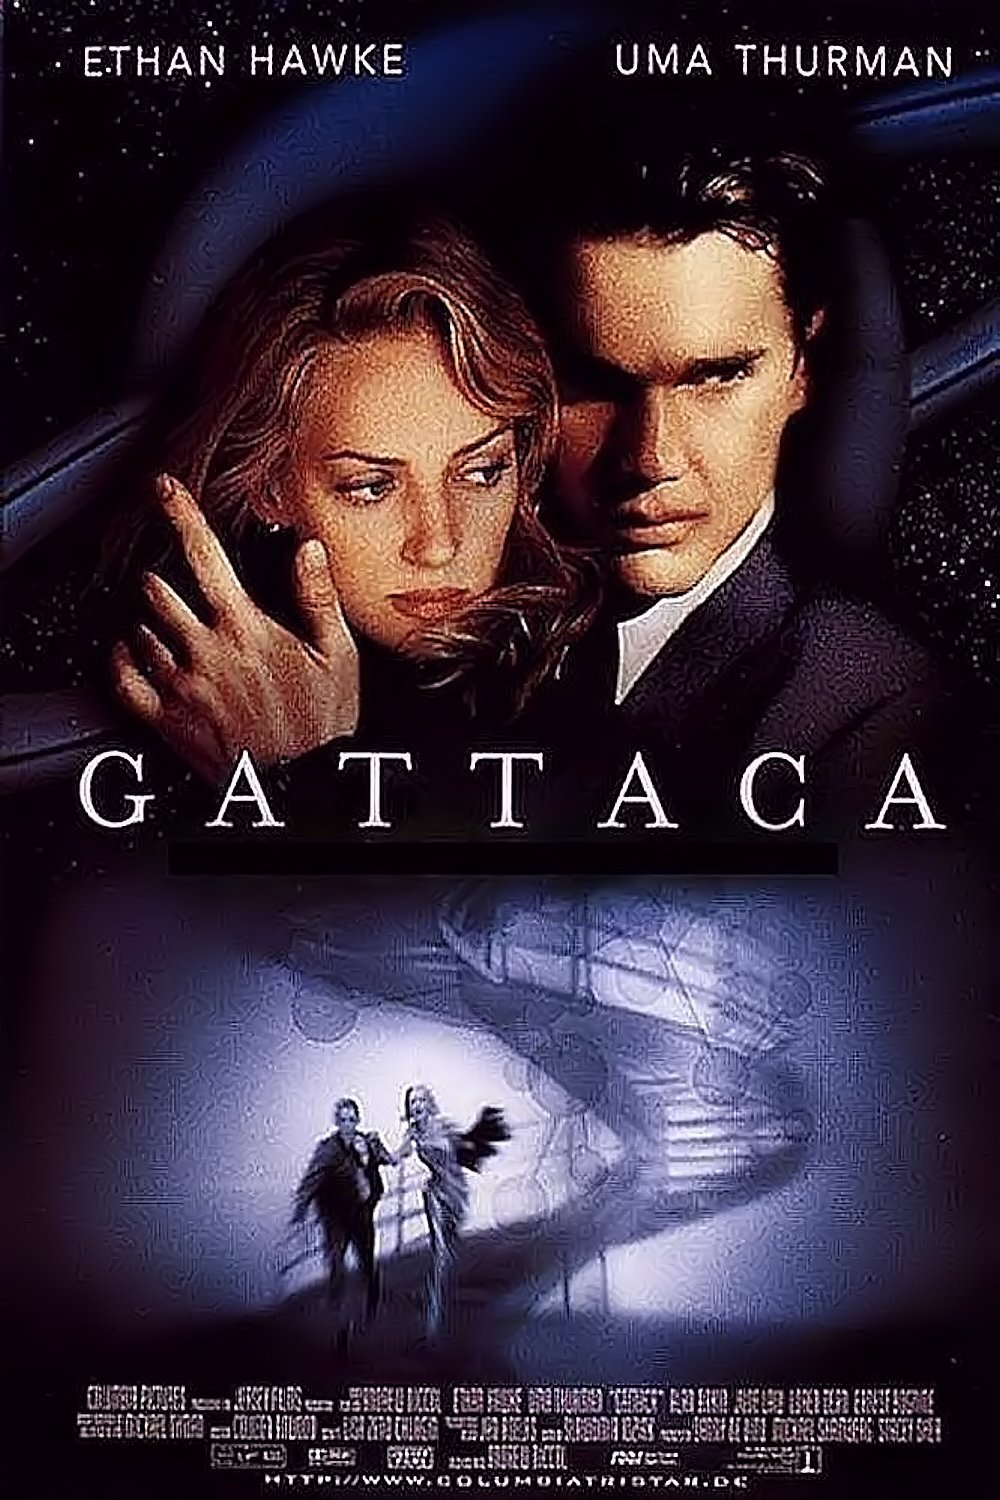 20 Years Later, How Close are We to GATTACA's Future?